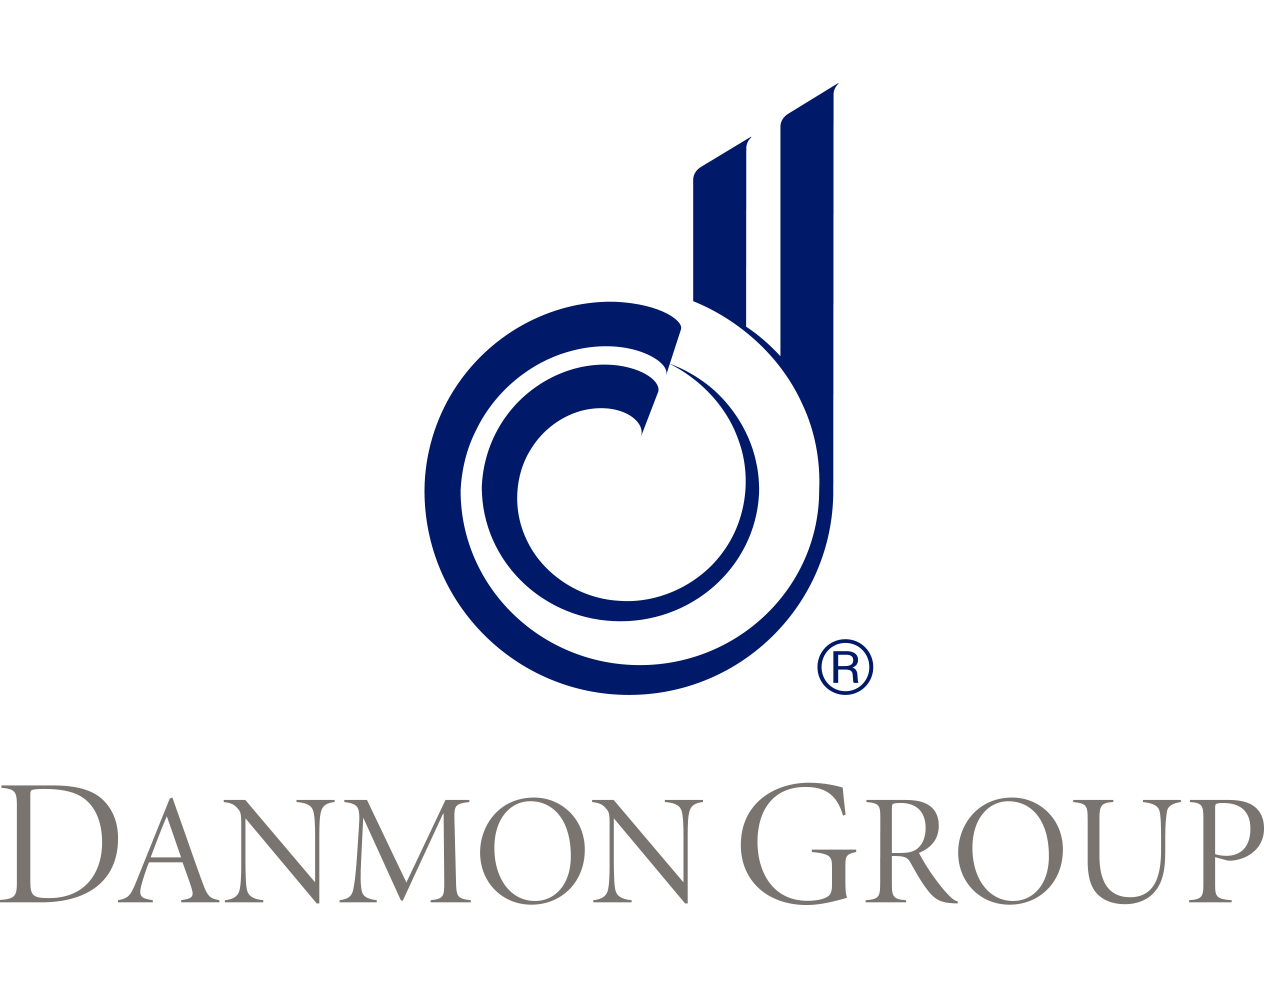 Danmon Group-logo-L